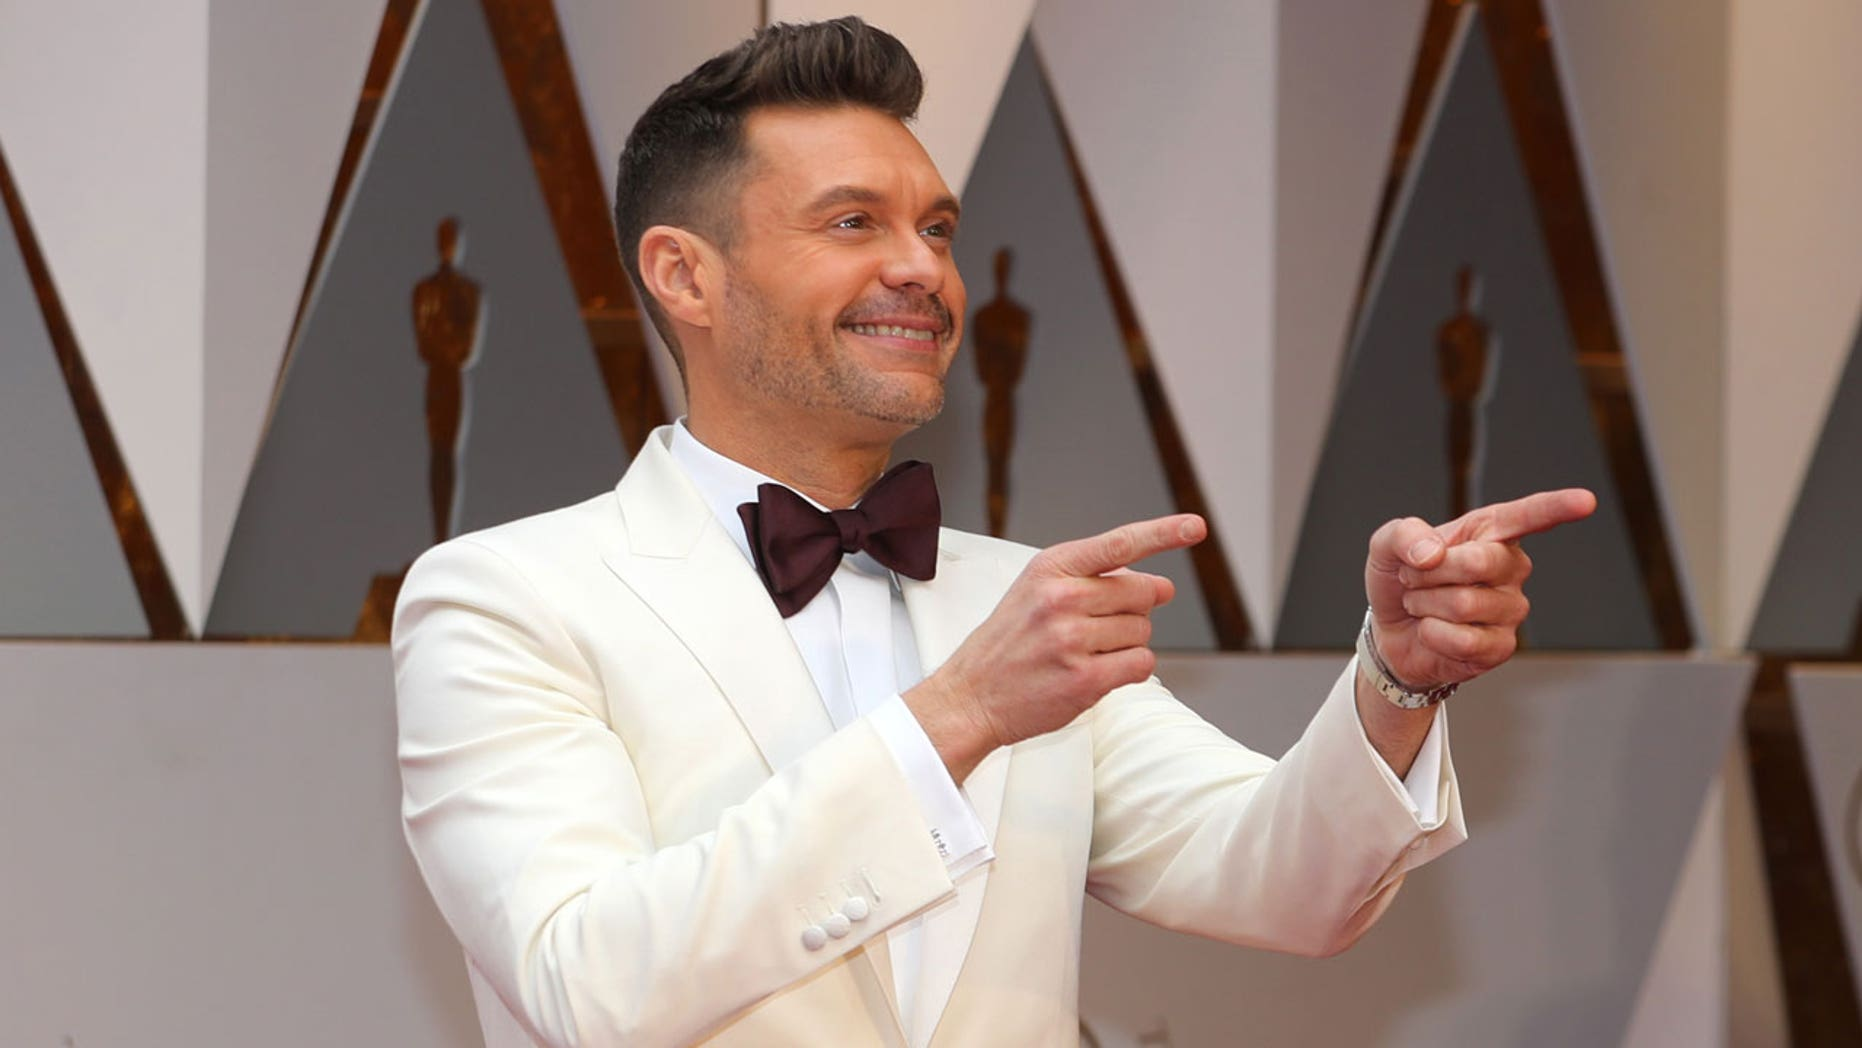 Seacrest and Ryan will soon live within shouting distance of each other's extravagant homes.